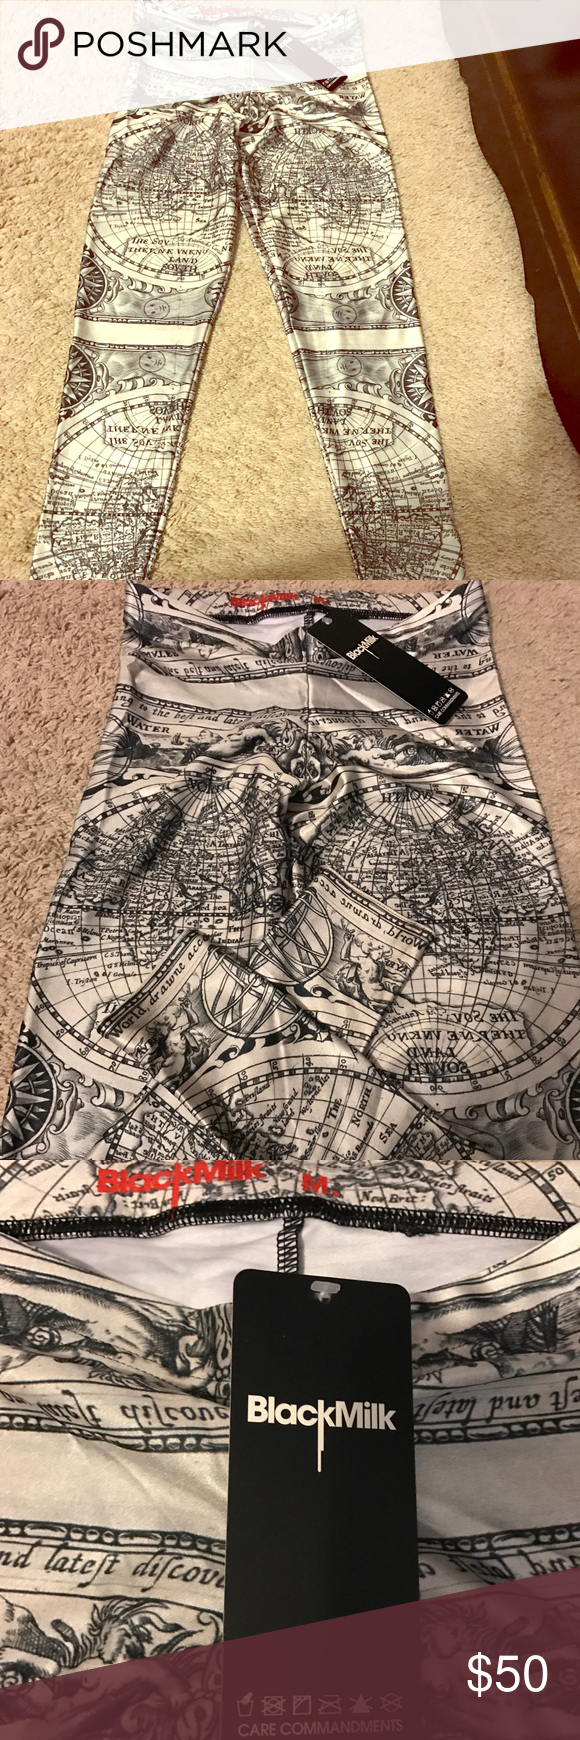 Blackmilk leggings nwt blackmilk leggings these black milk leggings feature a world map print and are brand new never gumiabroncs Choice Image